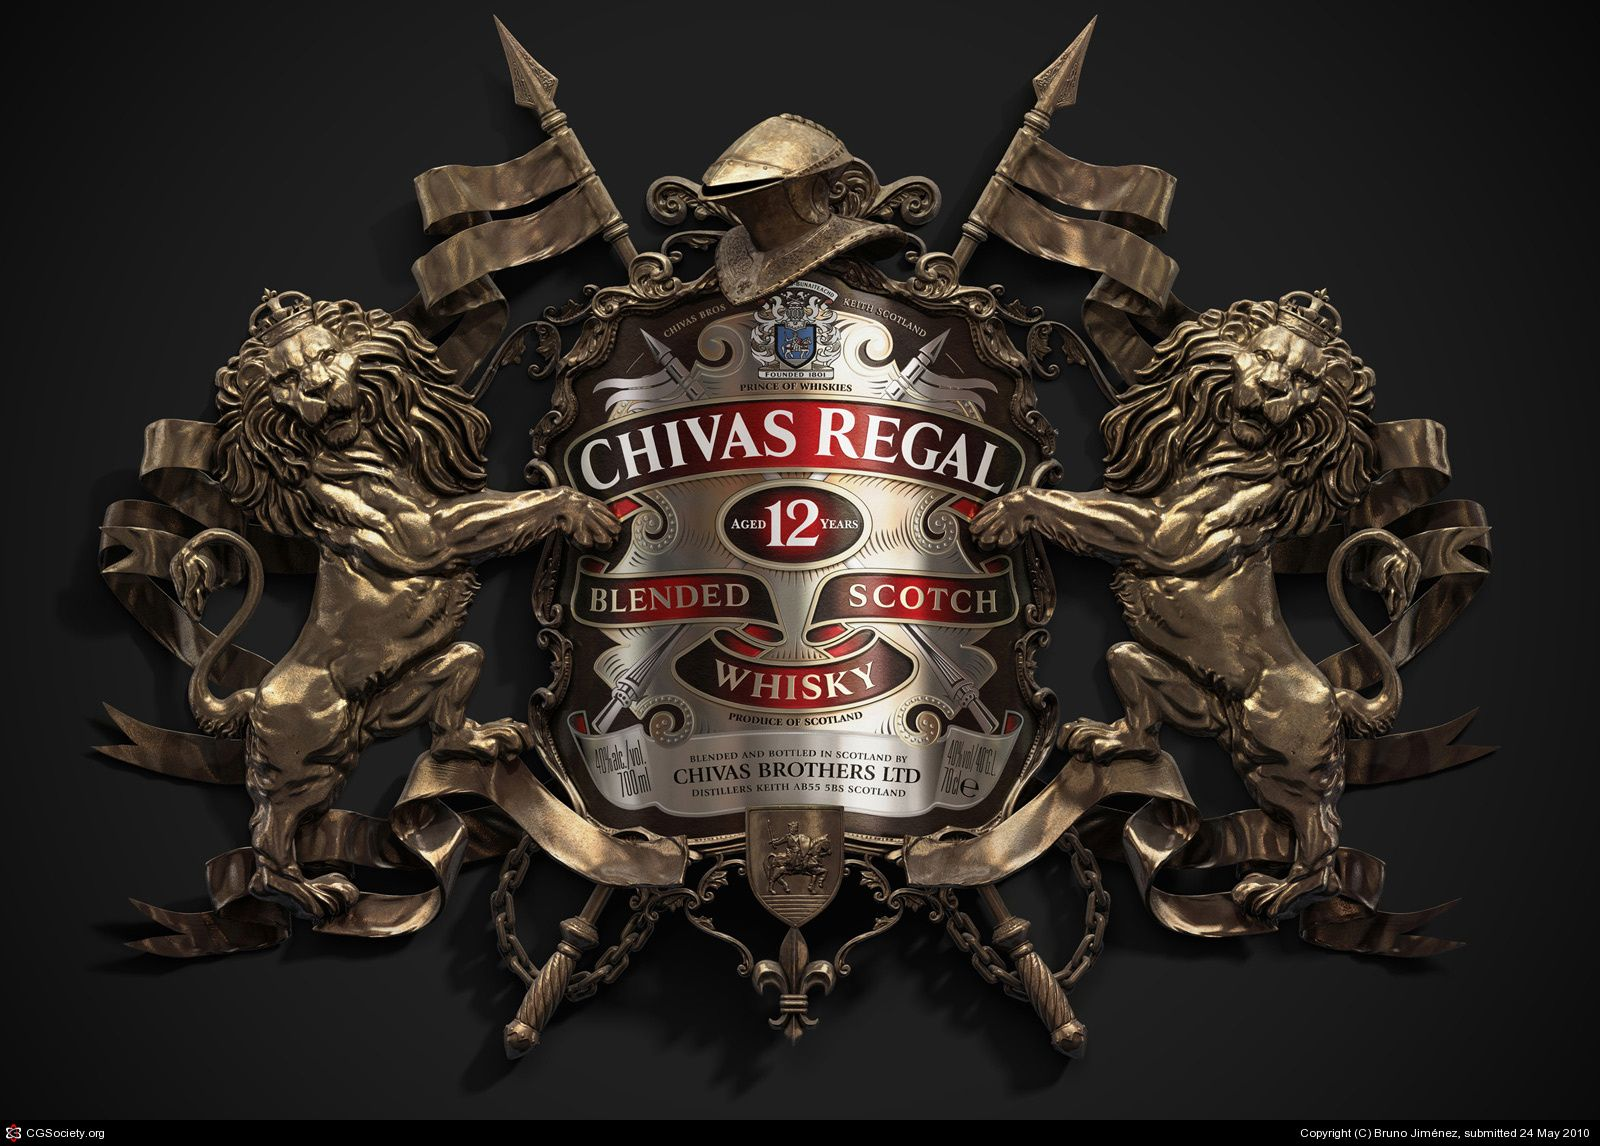 windows phone wallpaper chivas - Google Search | me | Pinterest ...